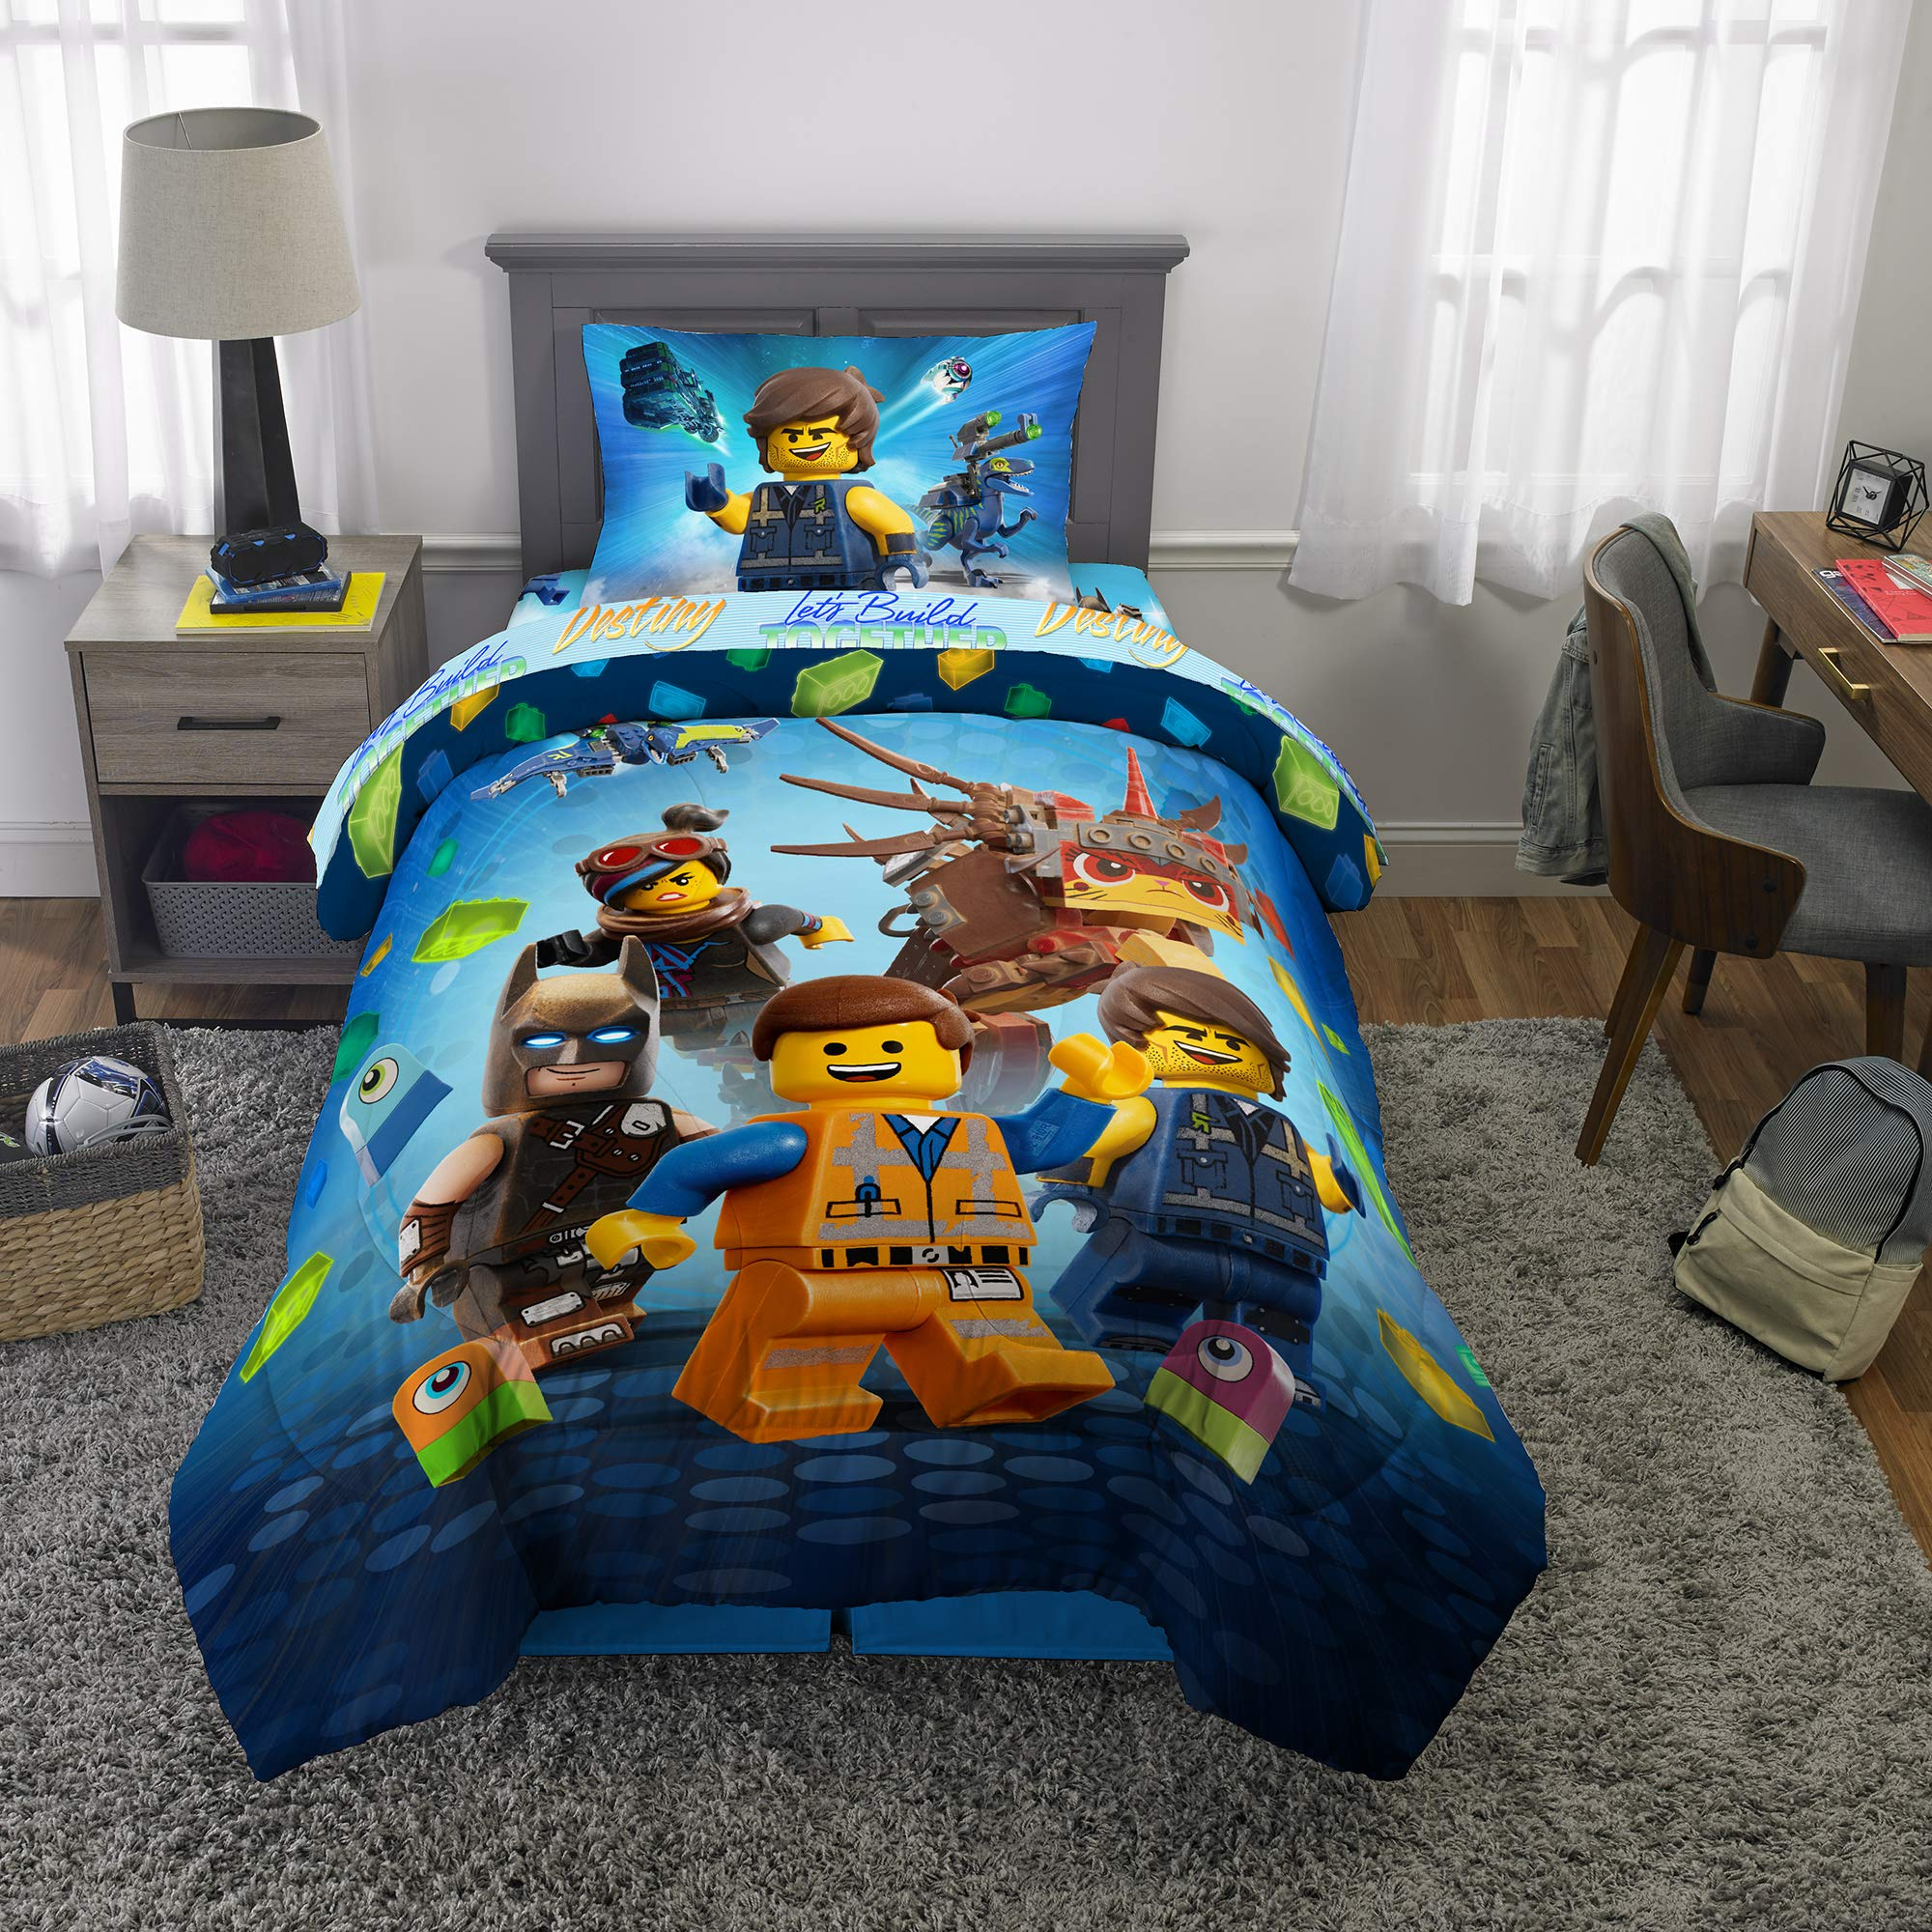 LEGO Movie 2 Kids Bedding Soft Microfiber Comforter and Sheet Set Twin Size 4 Piece Pack Blue